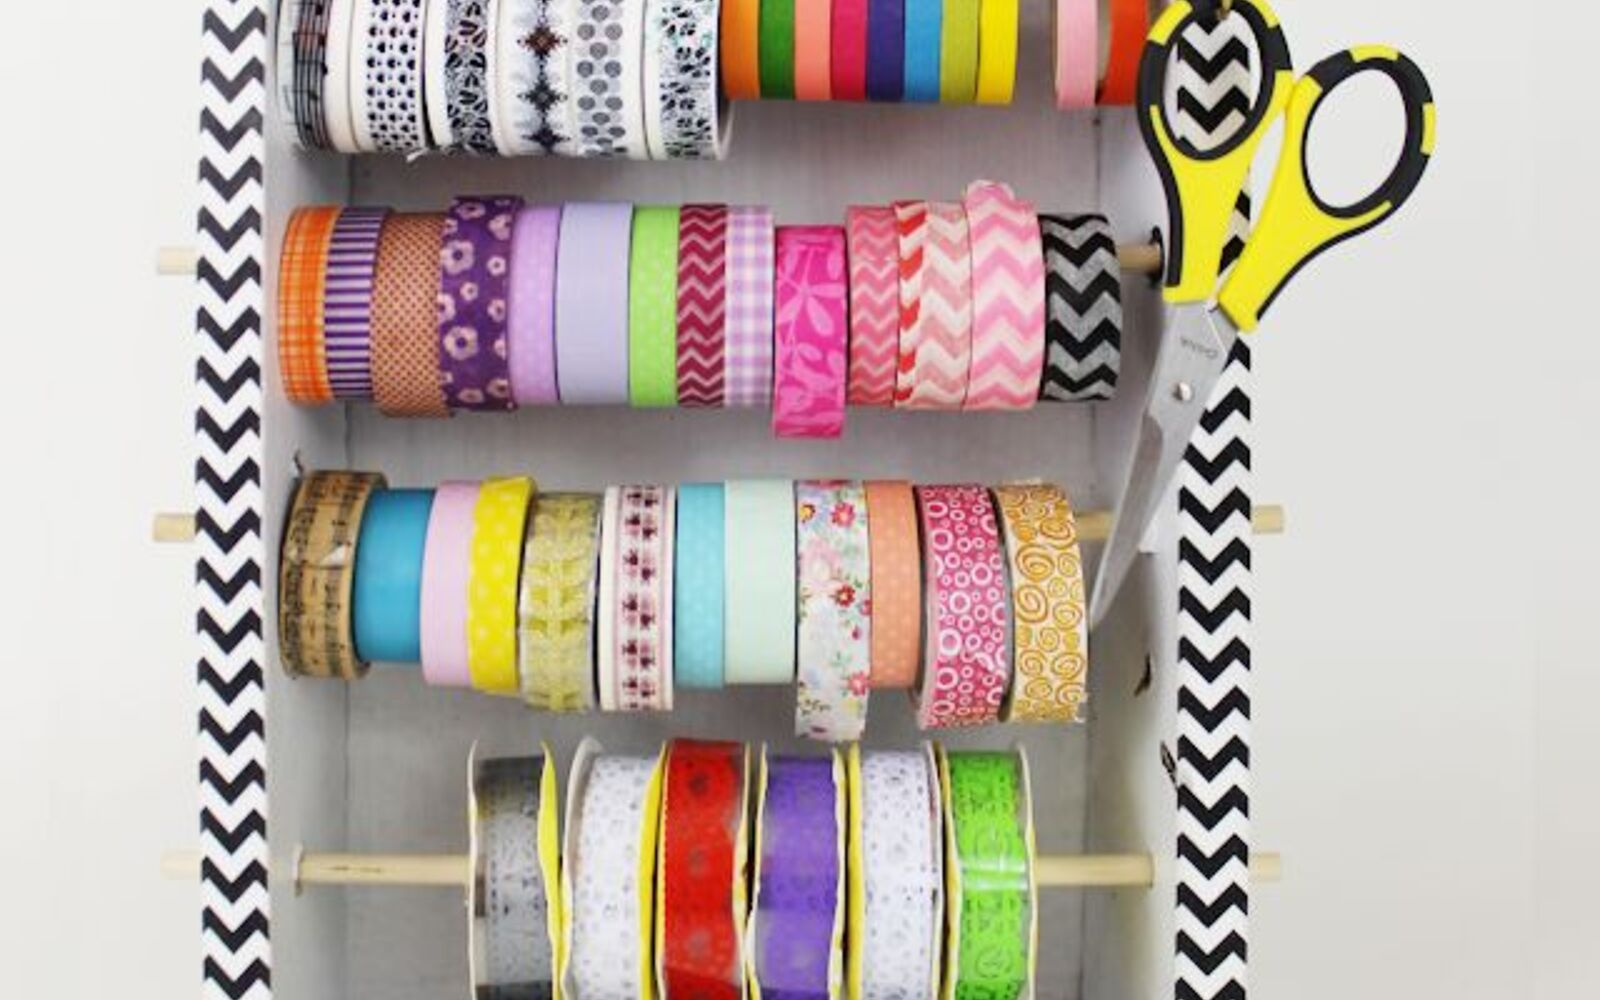 s 30 fun ways to keep your home organized, Craft A Dispenser For Washi Tape From A Box